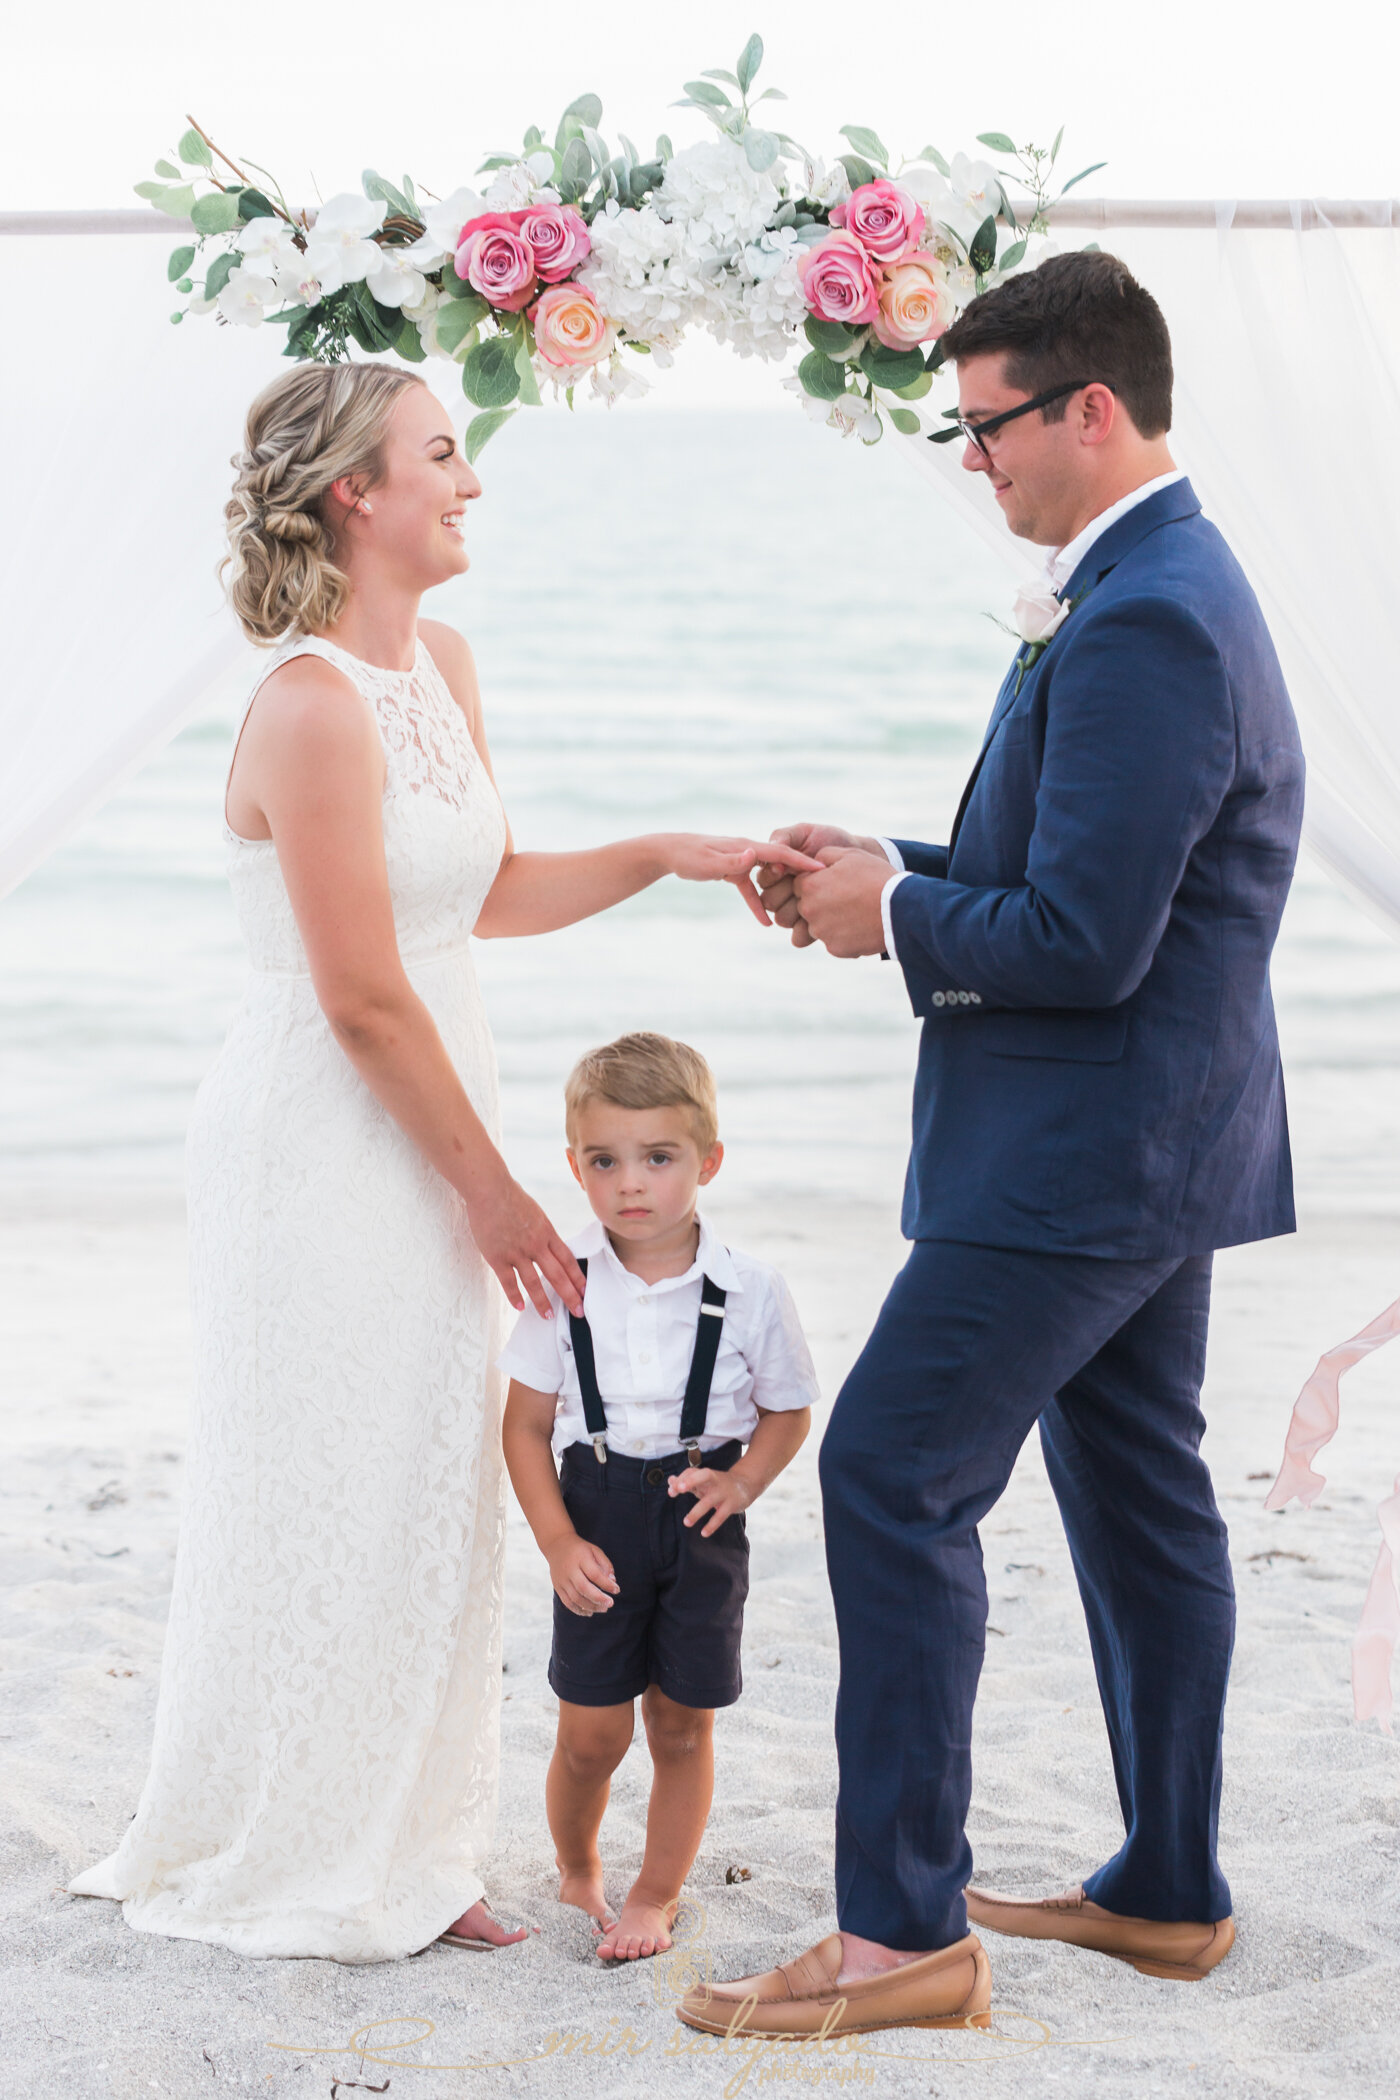 wedding-vows, beach-wedding-ceremony, resort-venue, bride-wedding-dress, groom-outfit